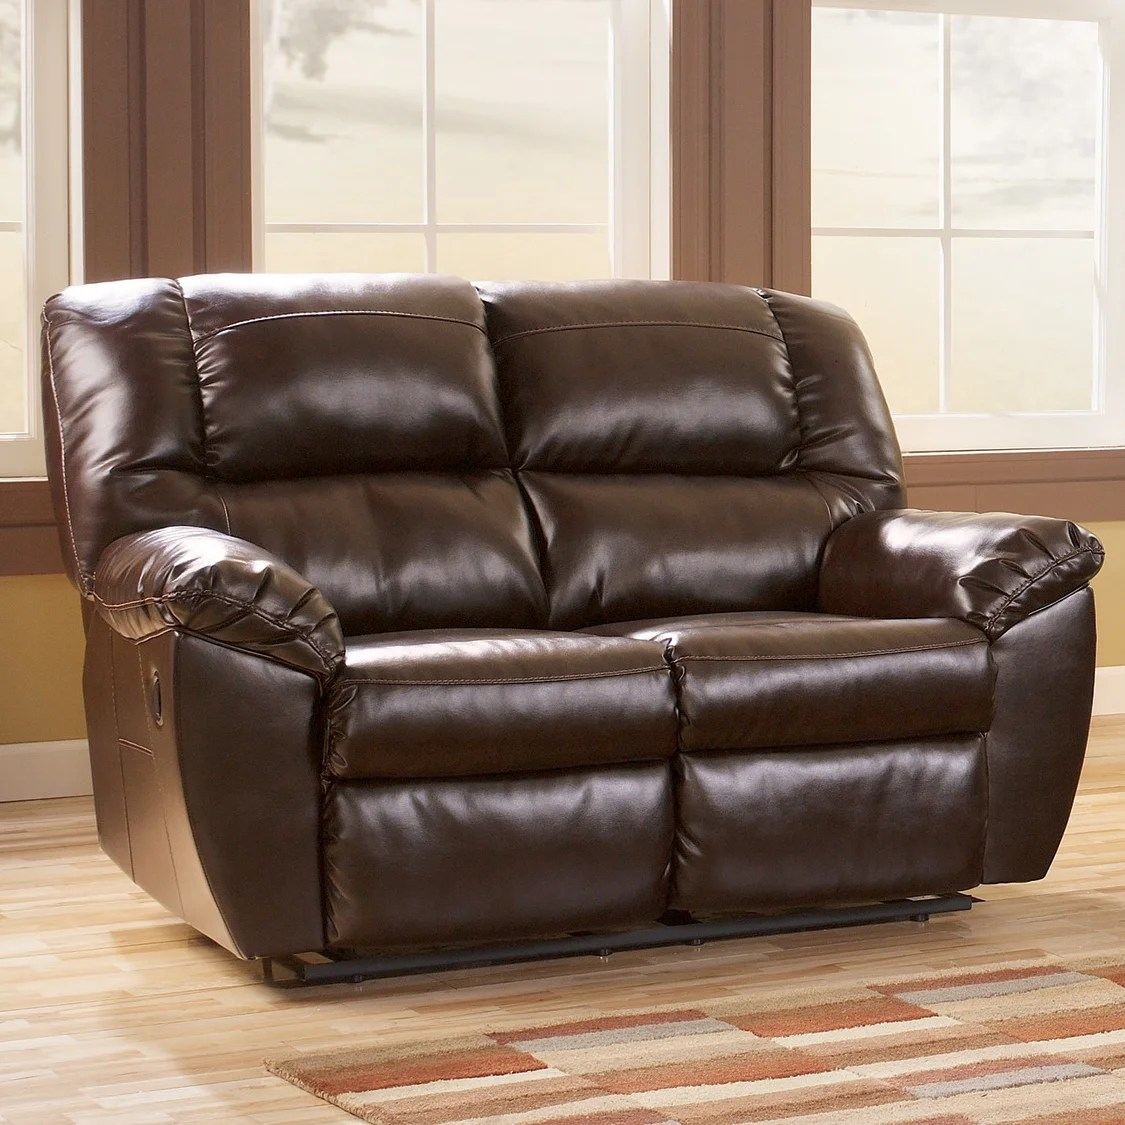 Signature Design by Ashley Ruth Reclining Loveseat